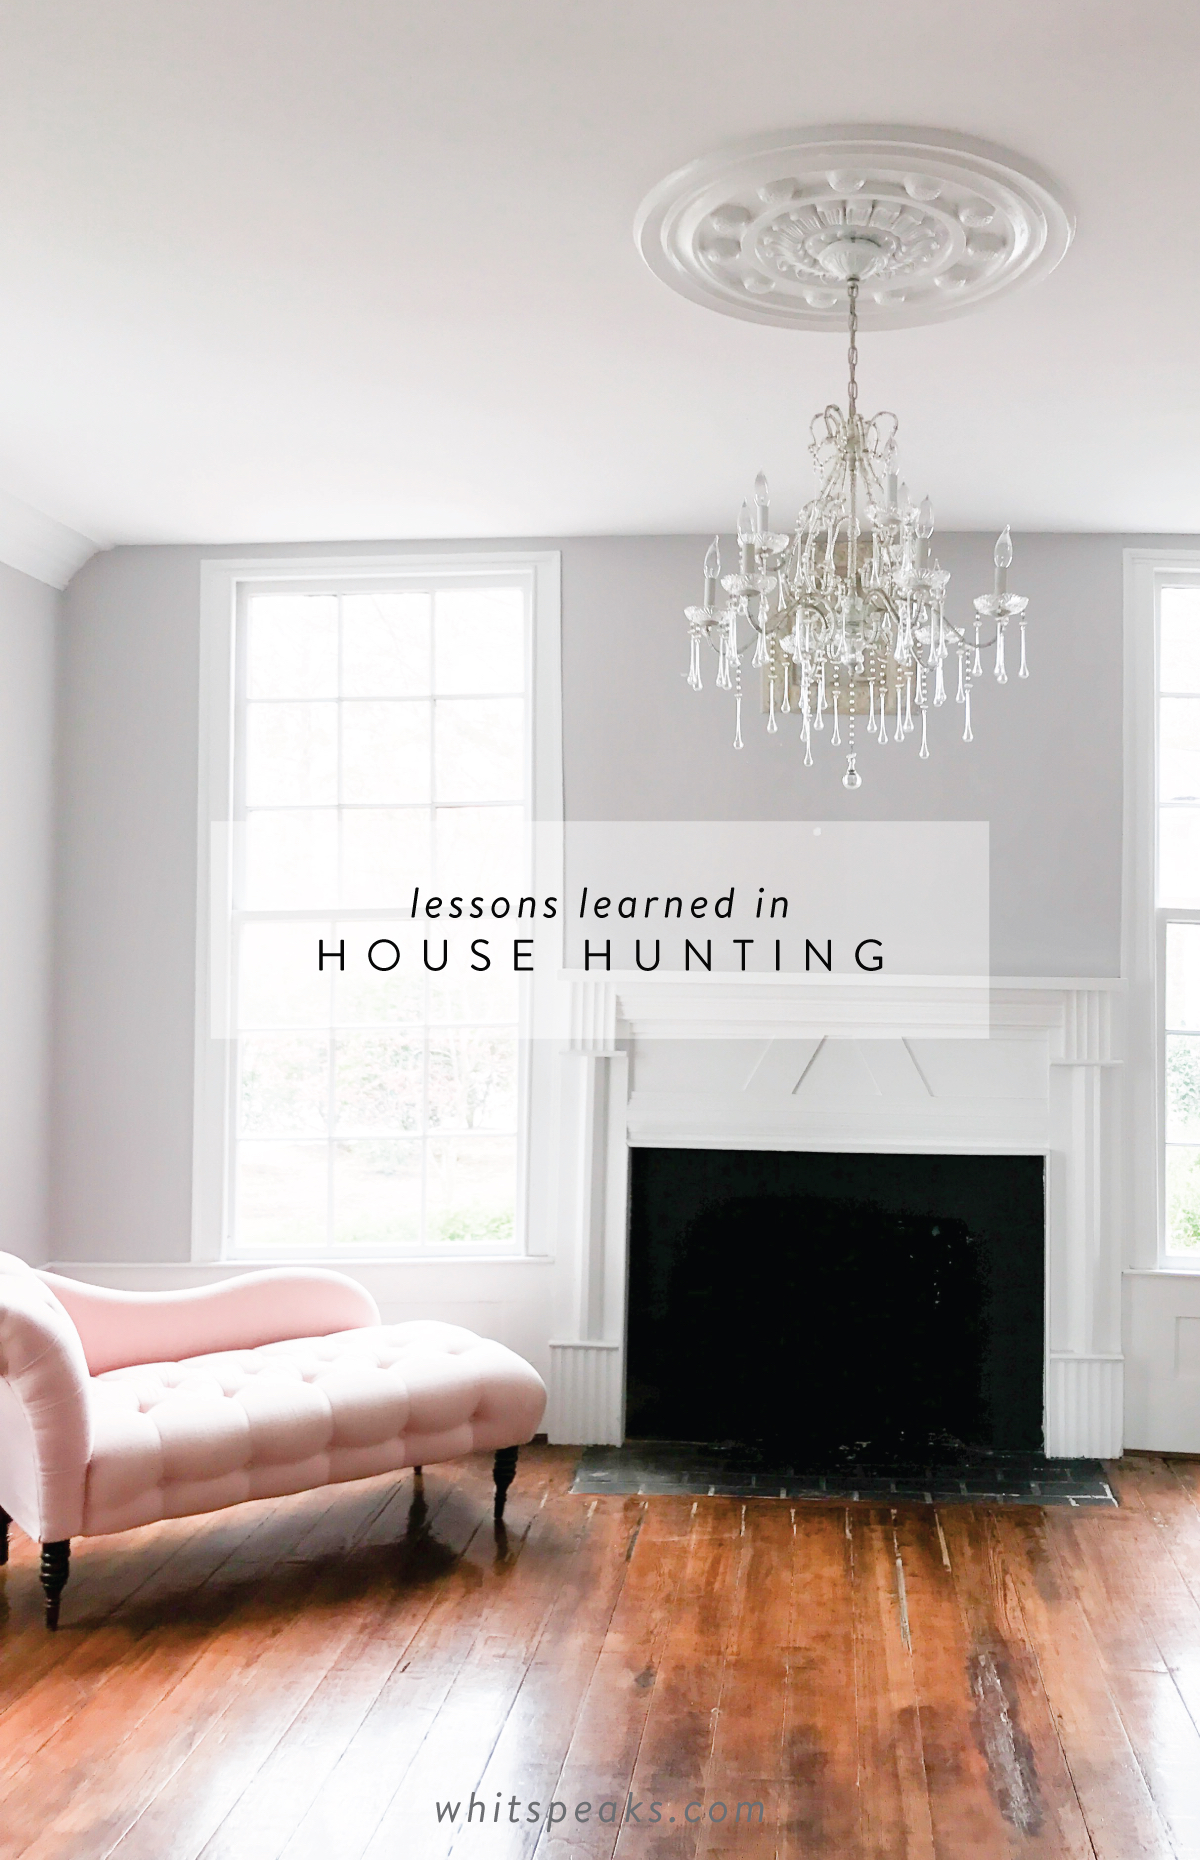 Lessons learned in house hunting